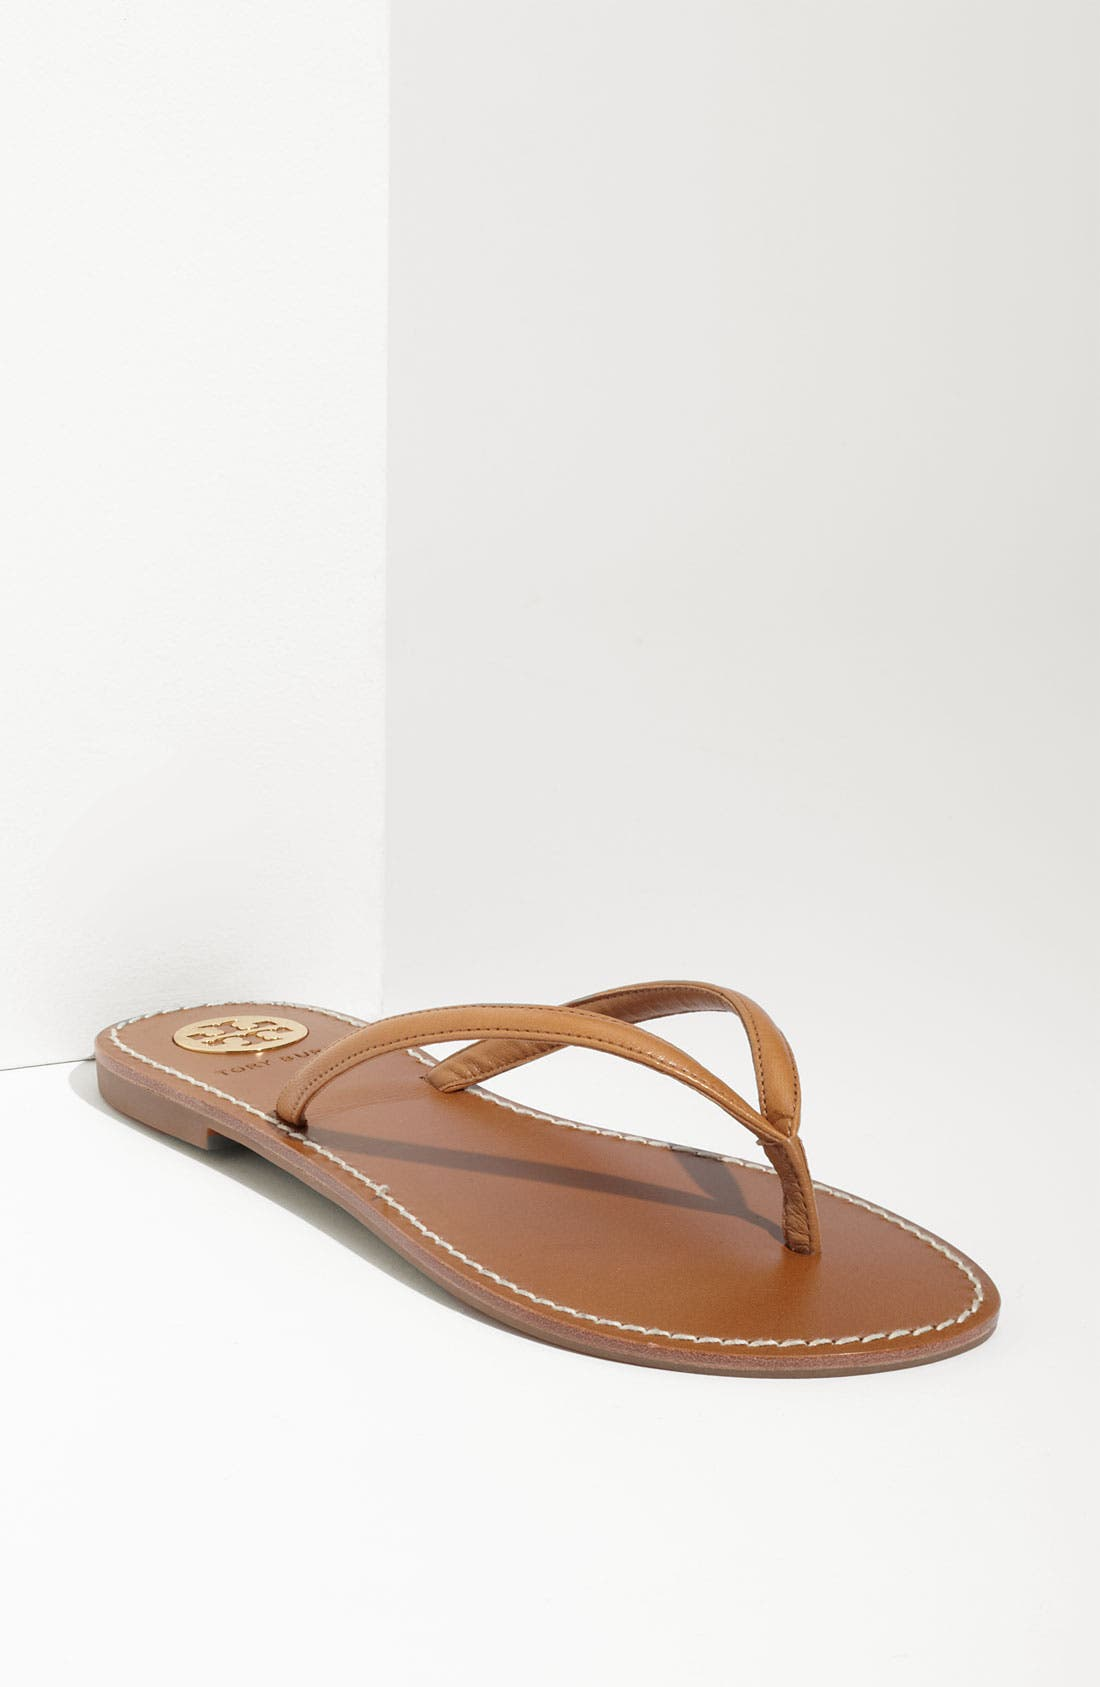 Alternate Image 1 Selected - Tory Burch 'Abitha' Flip Flop